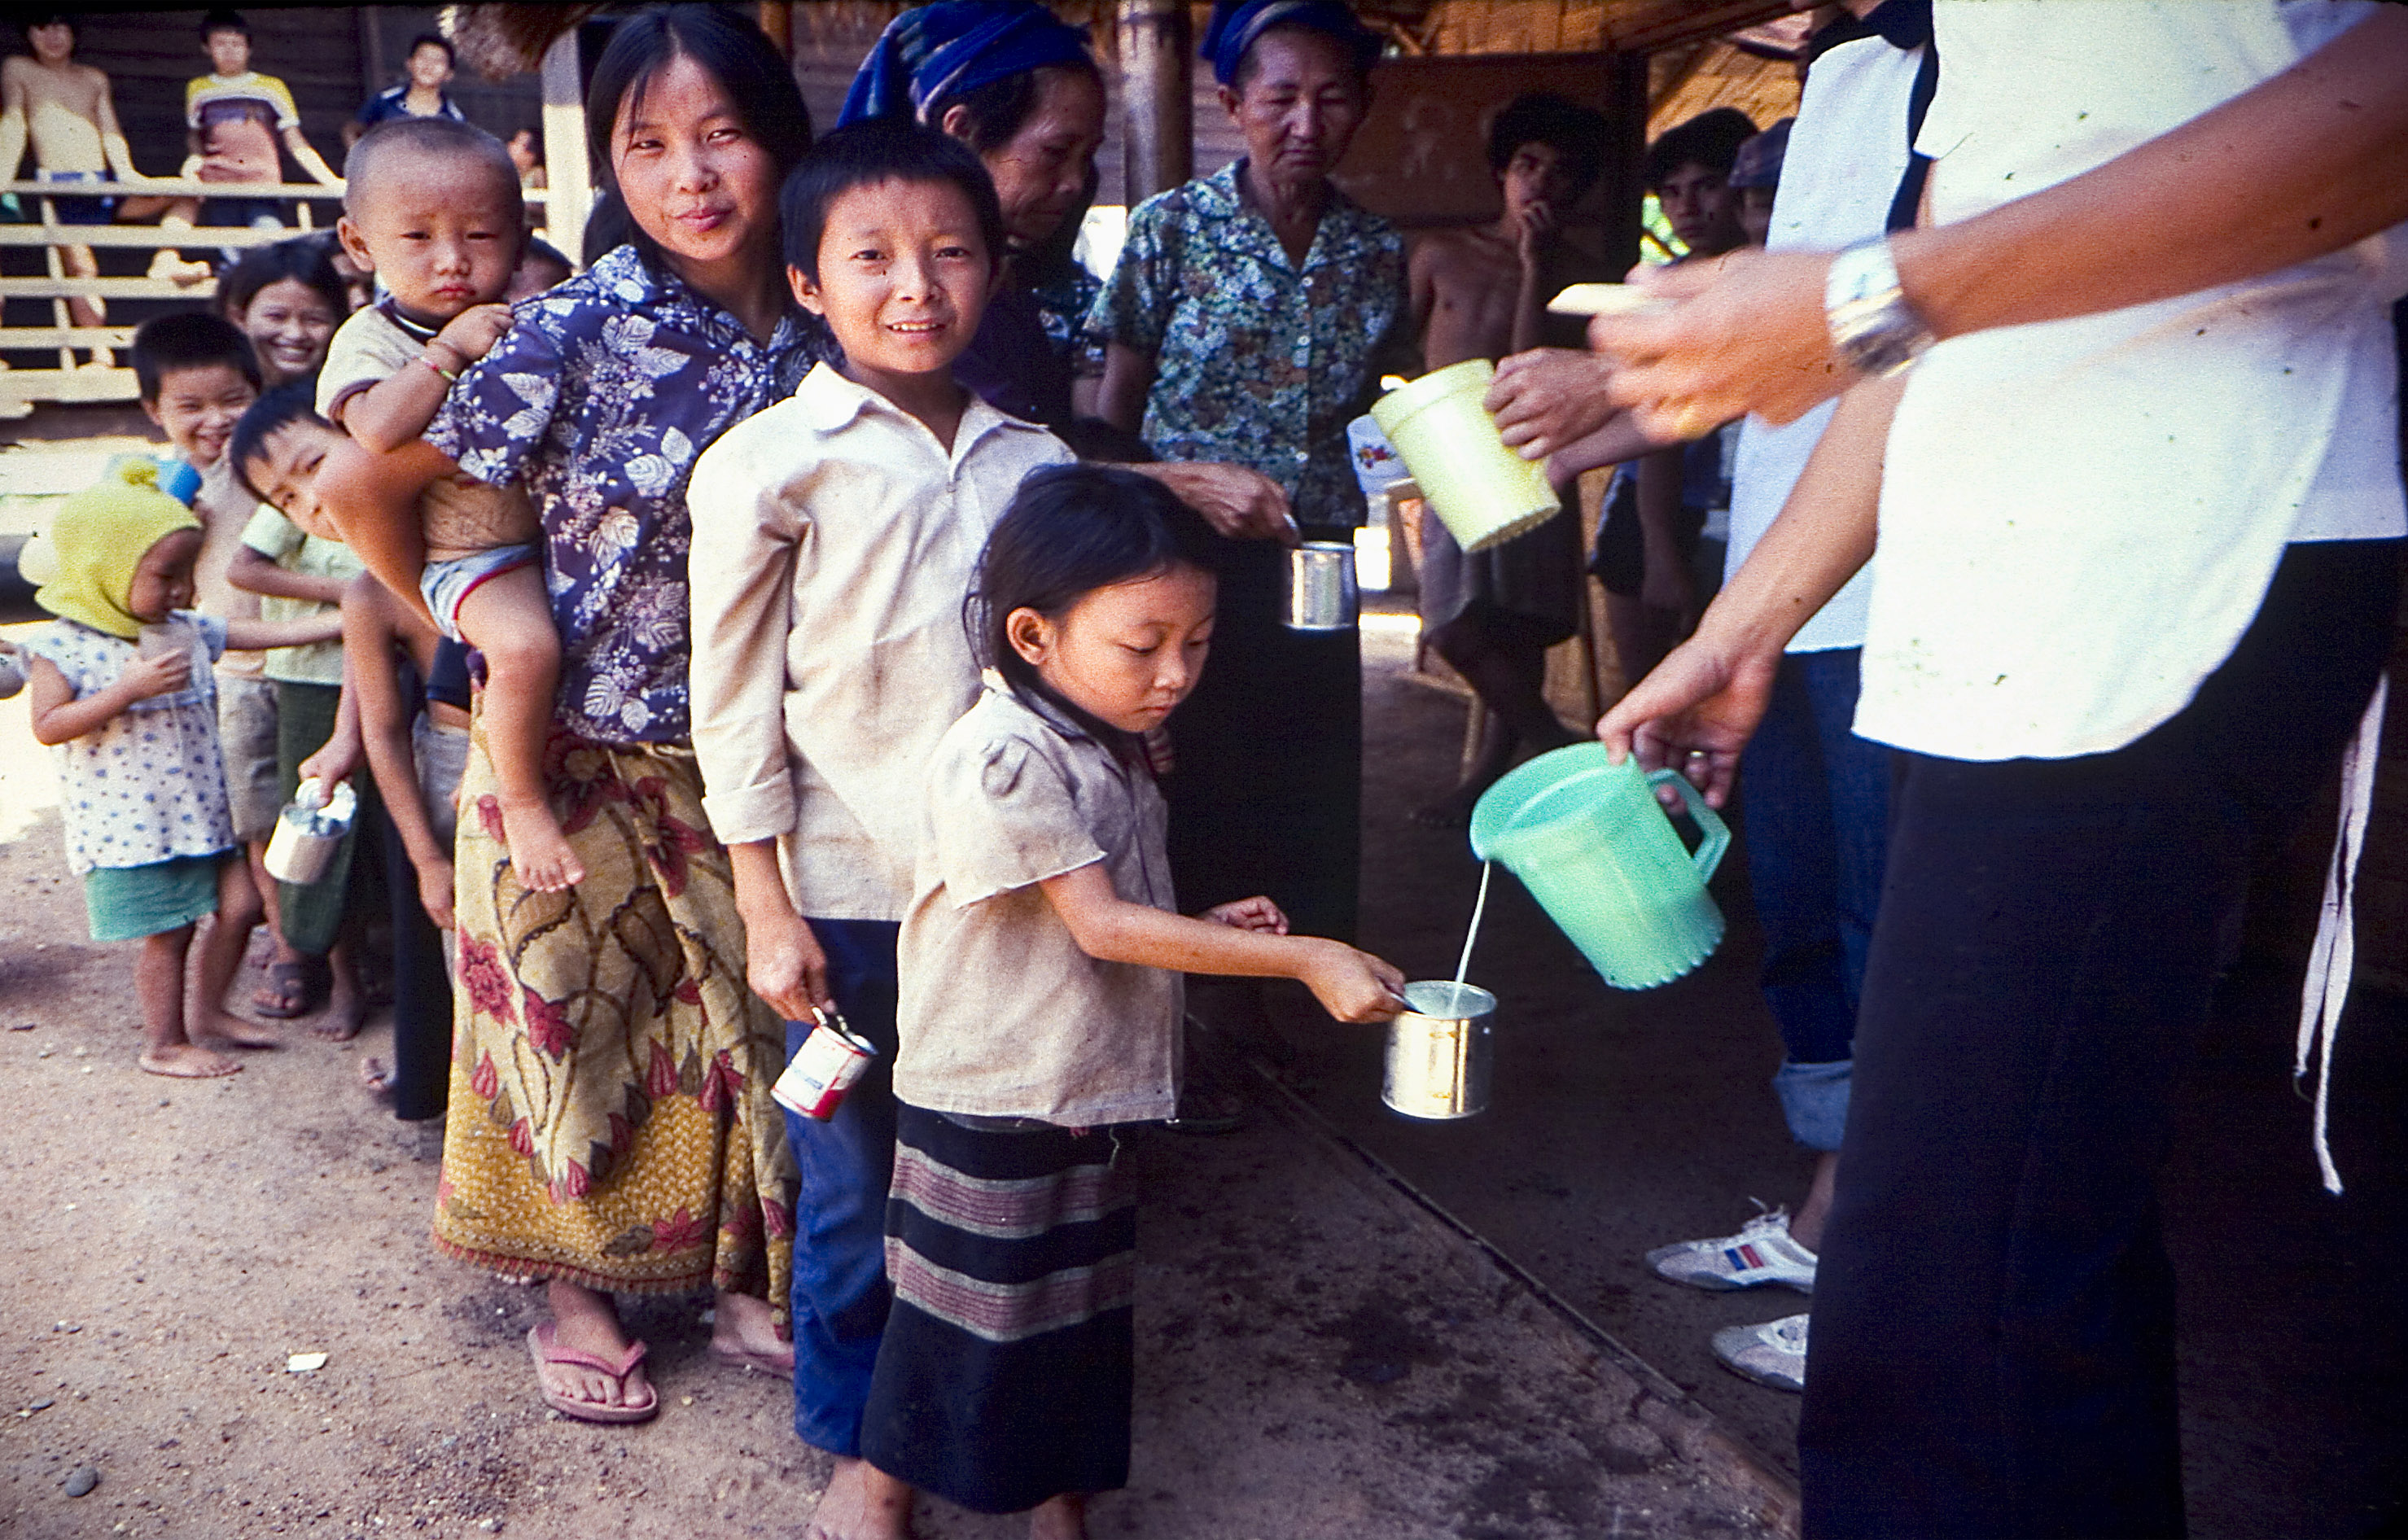 Refugees receiving food at Thai refugee camp.